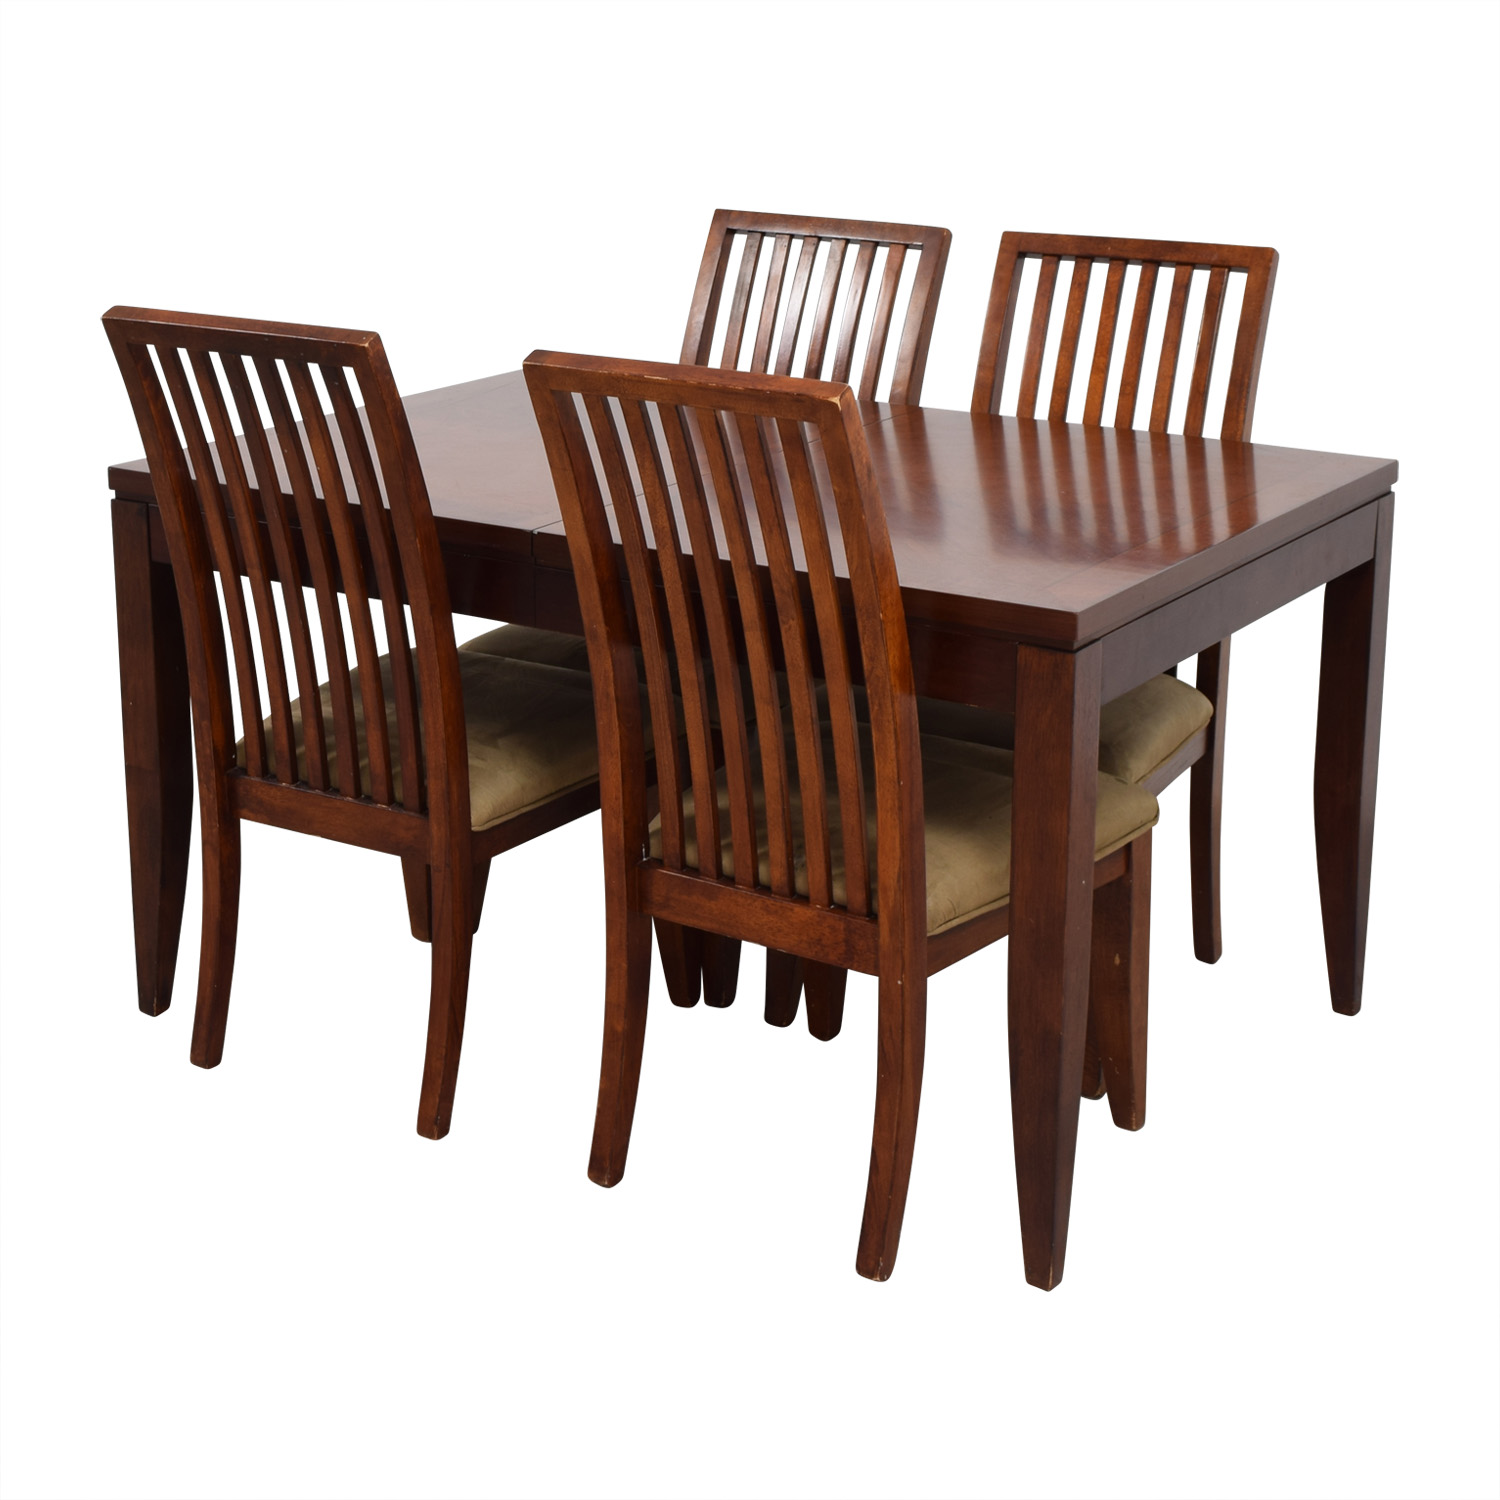 Www Macys Com Furniture Delivery: Macy's Macy's Wood Dining Set With Extendable